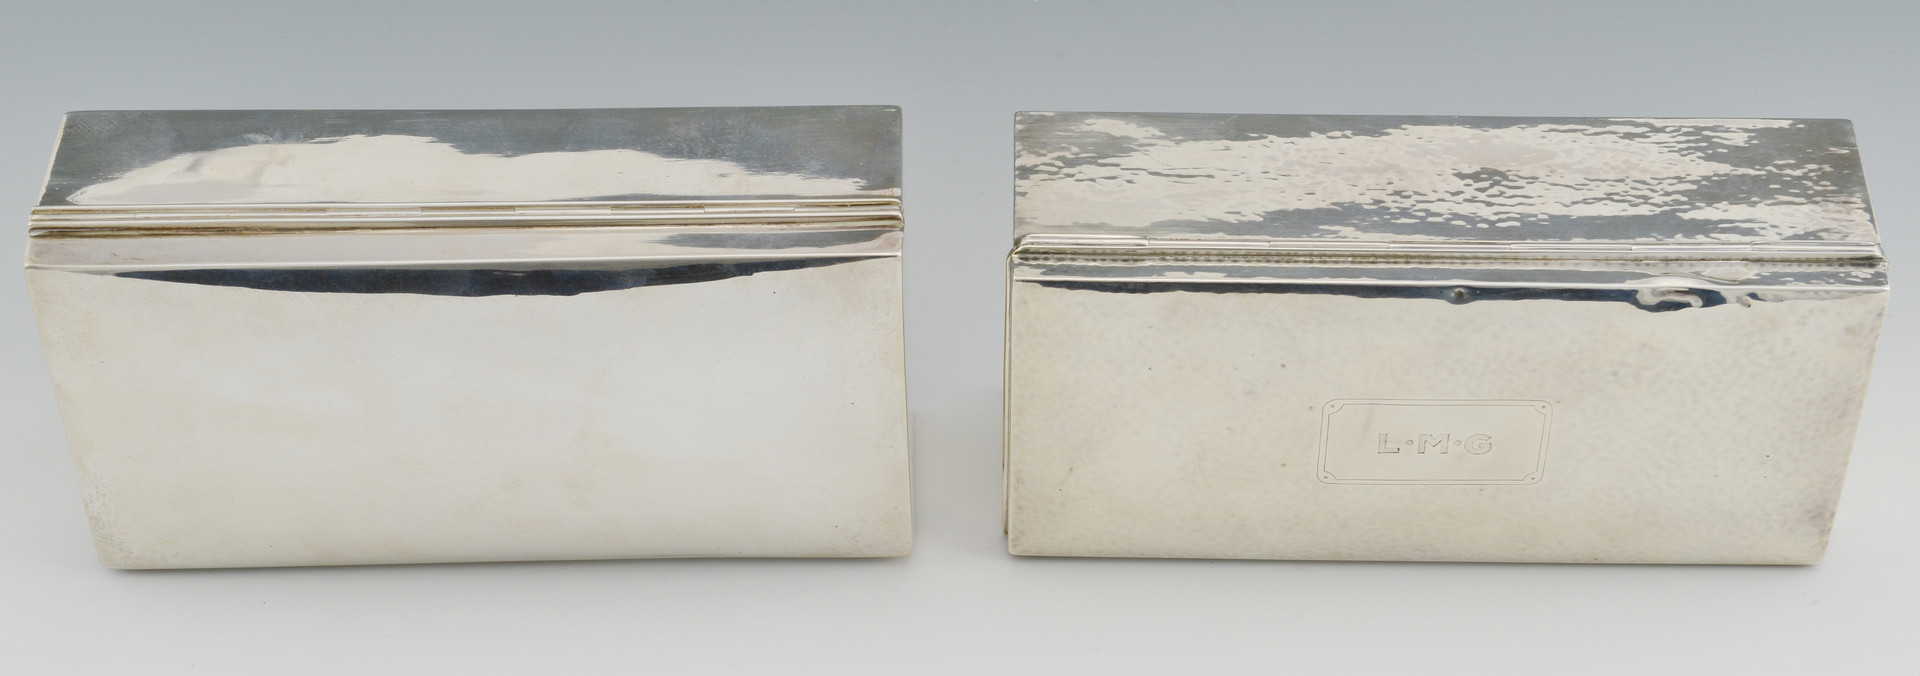 Lot 792: 2 Sterling Silver Boxes